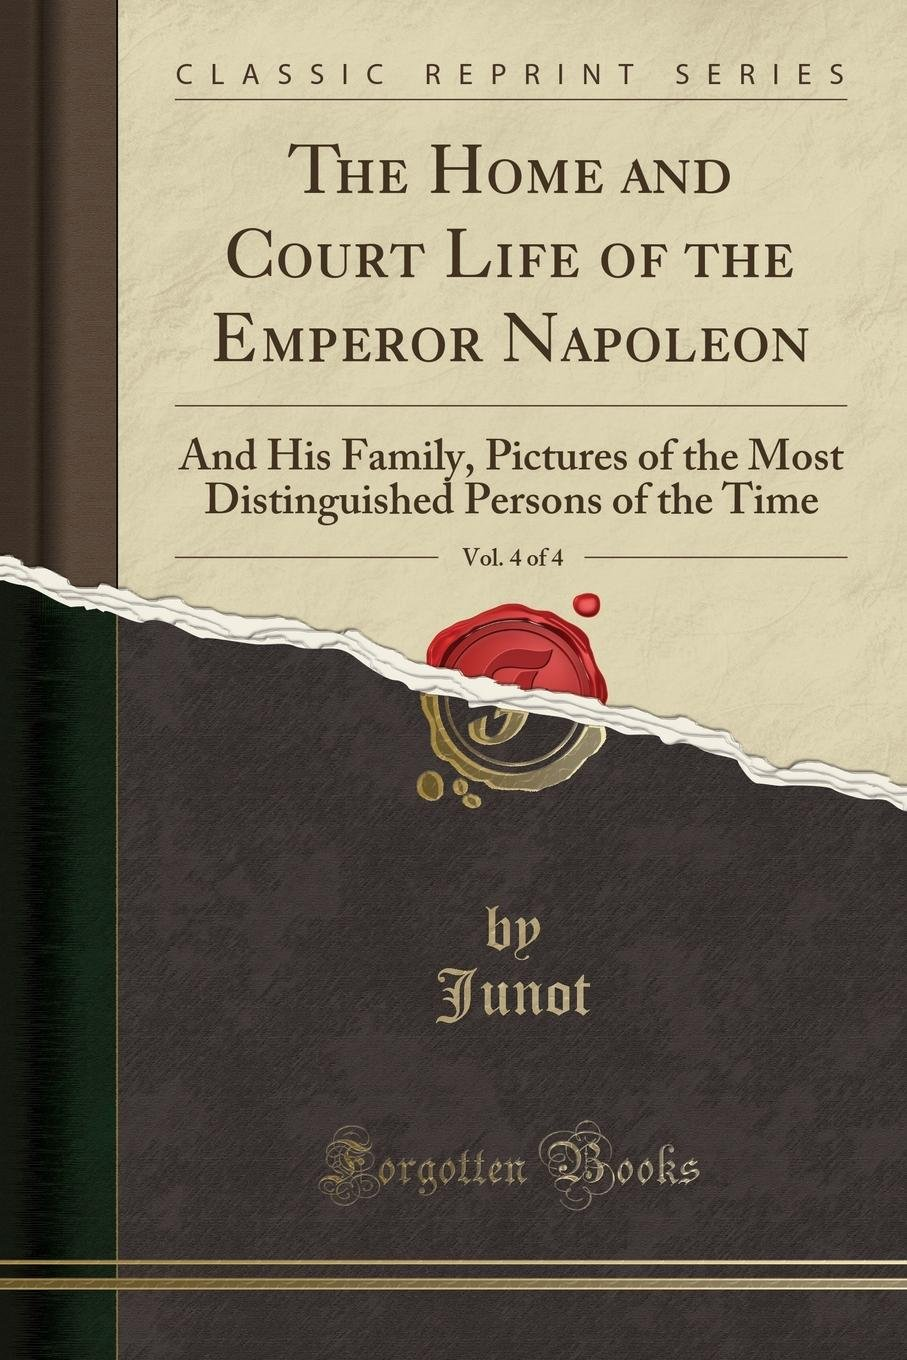 Read Online The Home and Court Life of the Emperor Napoleon, Vol. 4 of 4: And His Family, Pictures of the Most Distinguished Persons of the Time (Classic Reprint) ebook